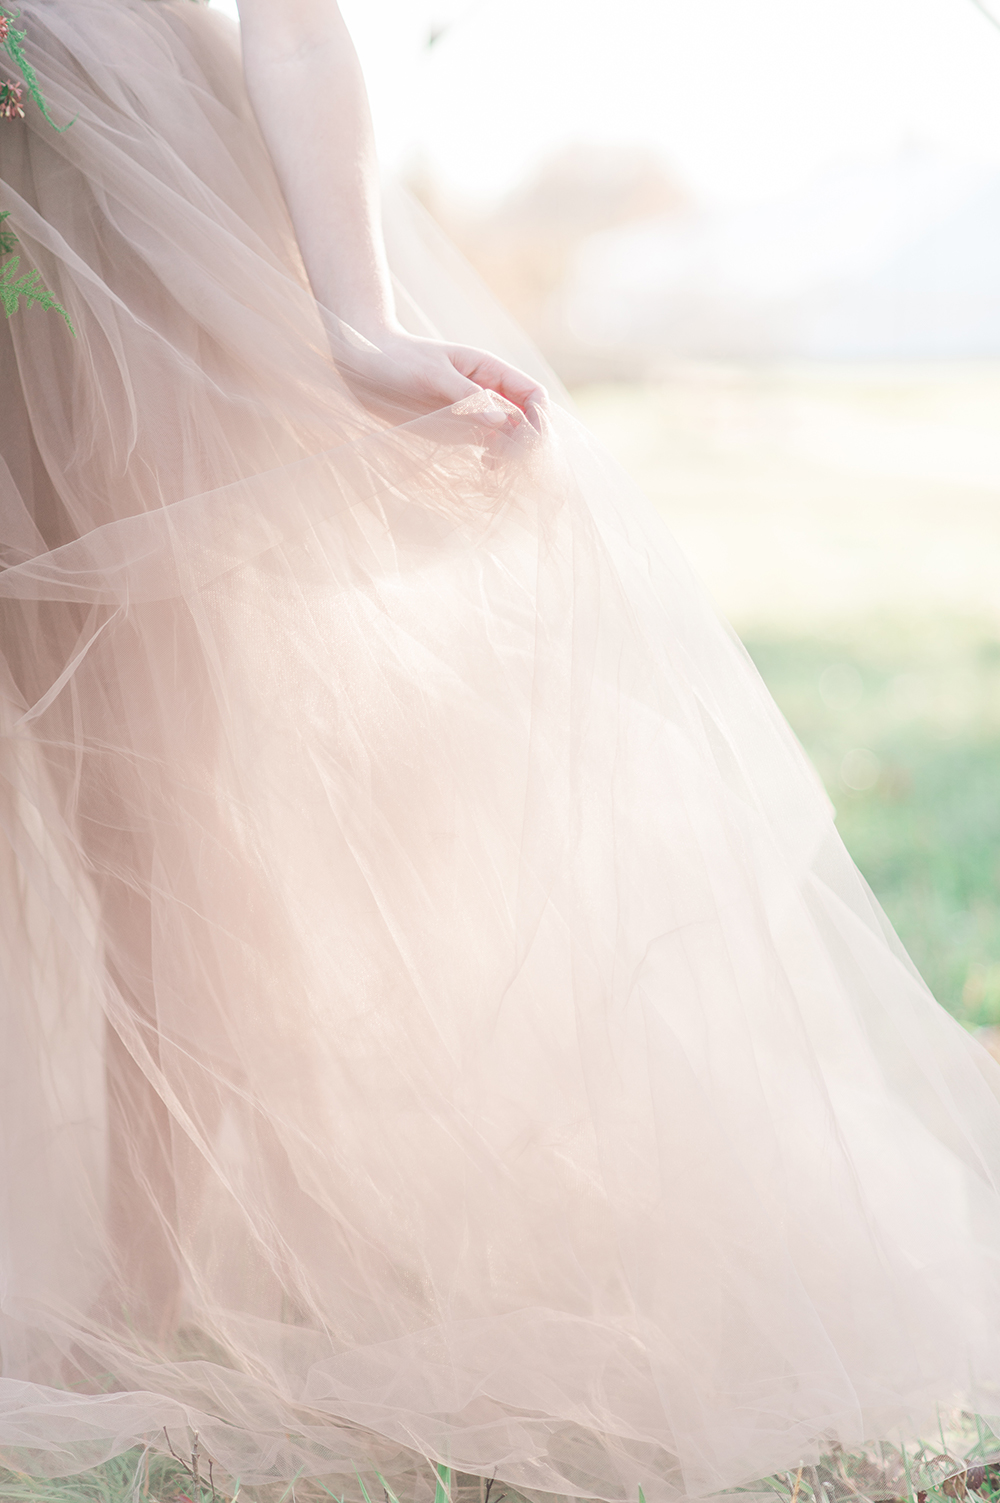 tulle wedding dress - photo by Jenny B Photos http://ruffledblog.com/ethereal-wedding-inspiration-with-vintage-accents